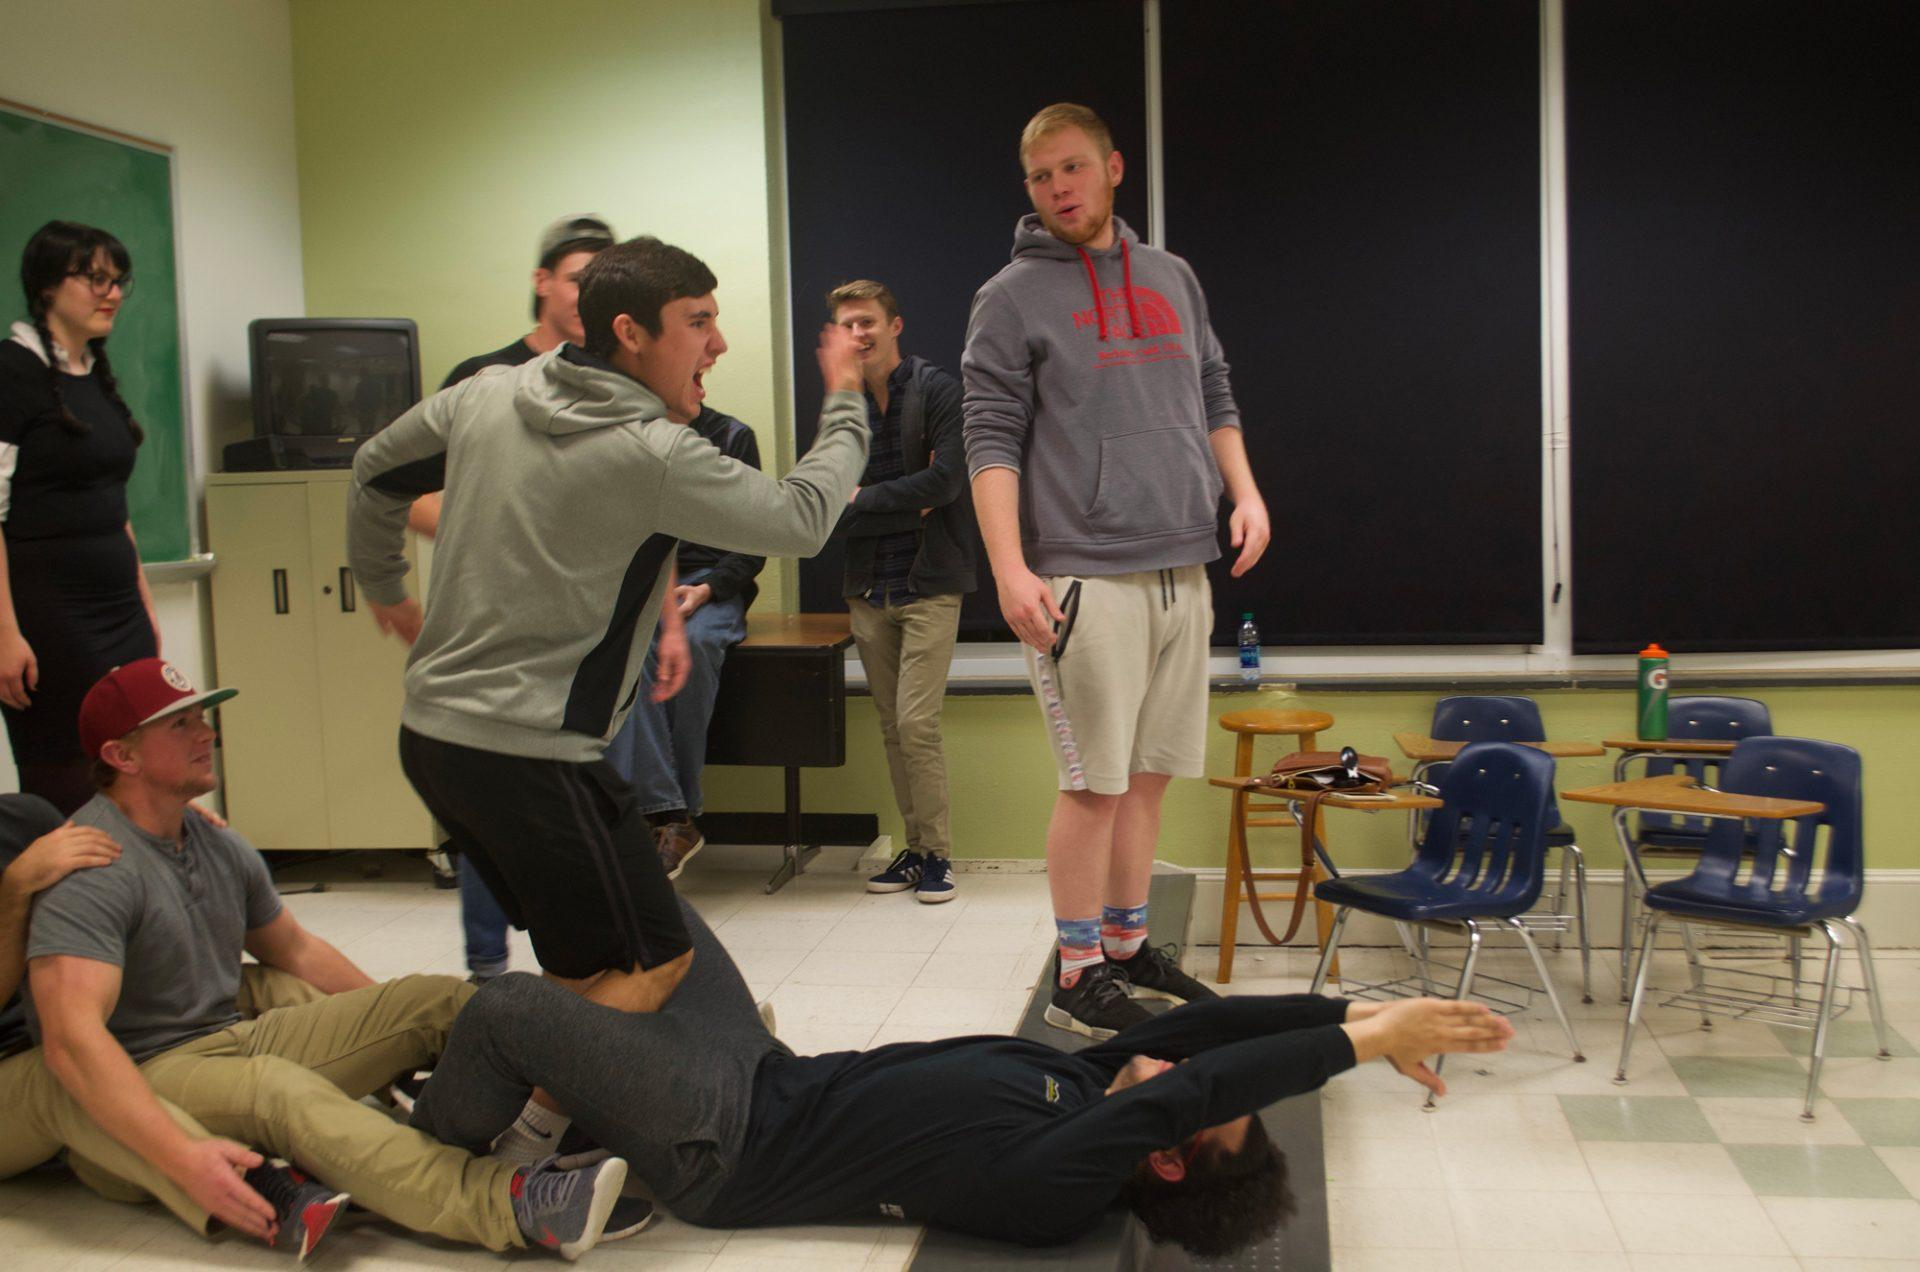 The+members+of+NouN+rehearsing+in+a+classroom.+NouN+is+Appalachian+State%E2%80%99s+only+improv+comedy+theater+group.+